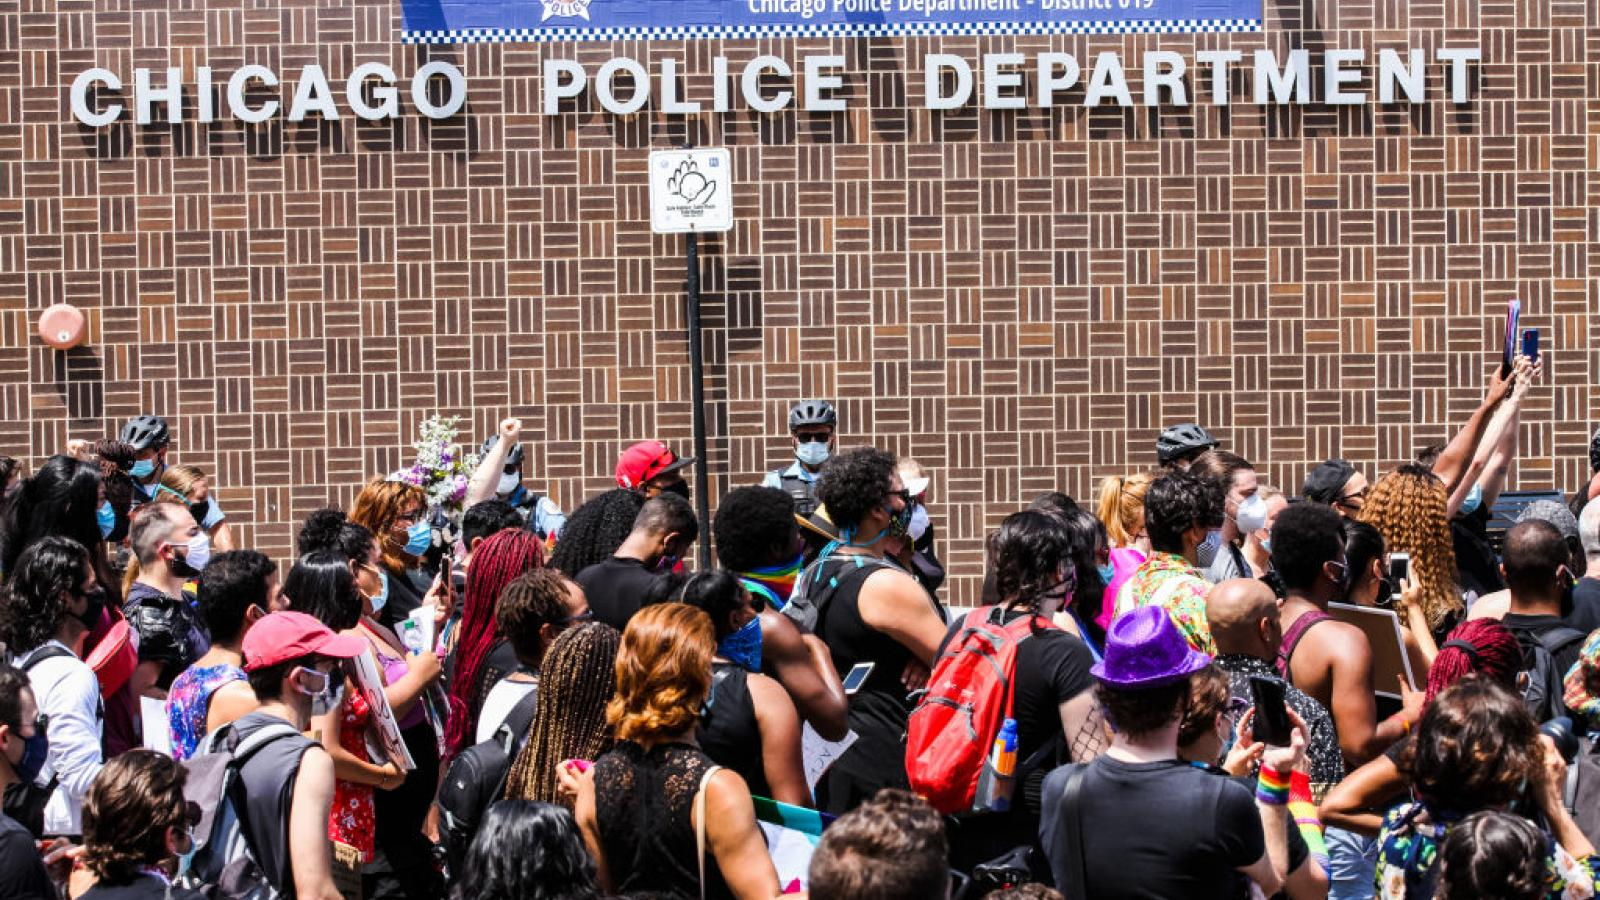 Chicagoans gather in front of a city Police Department